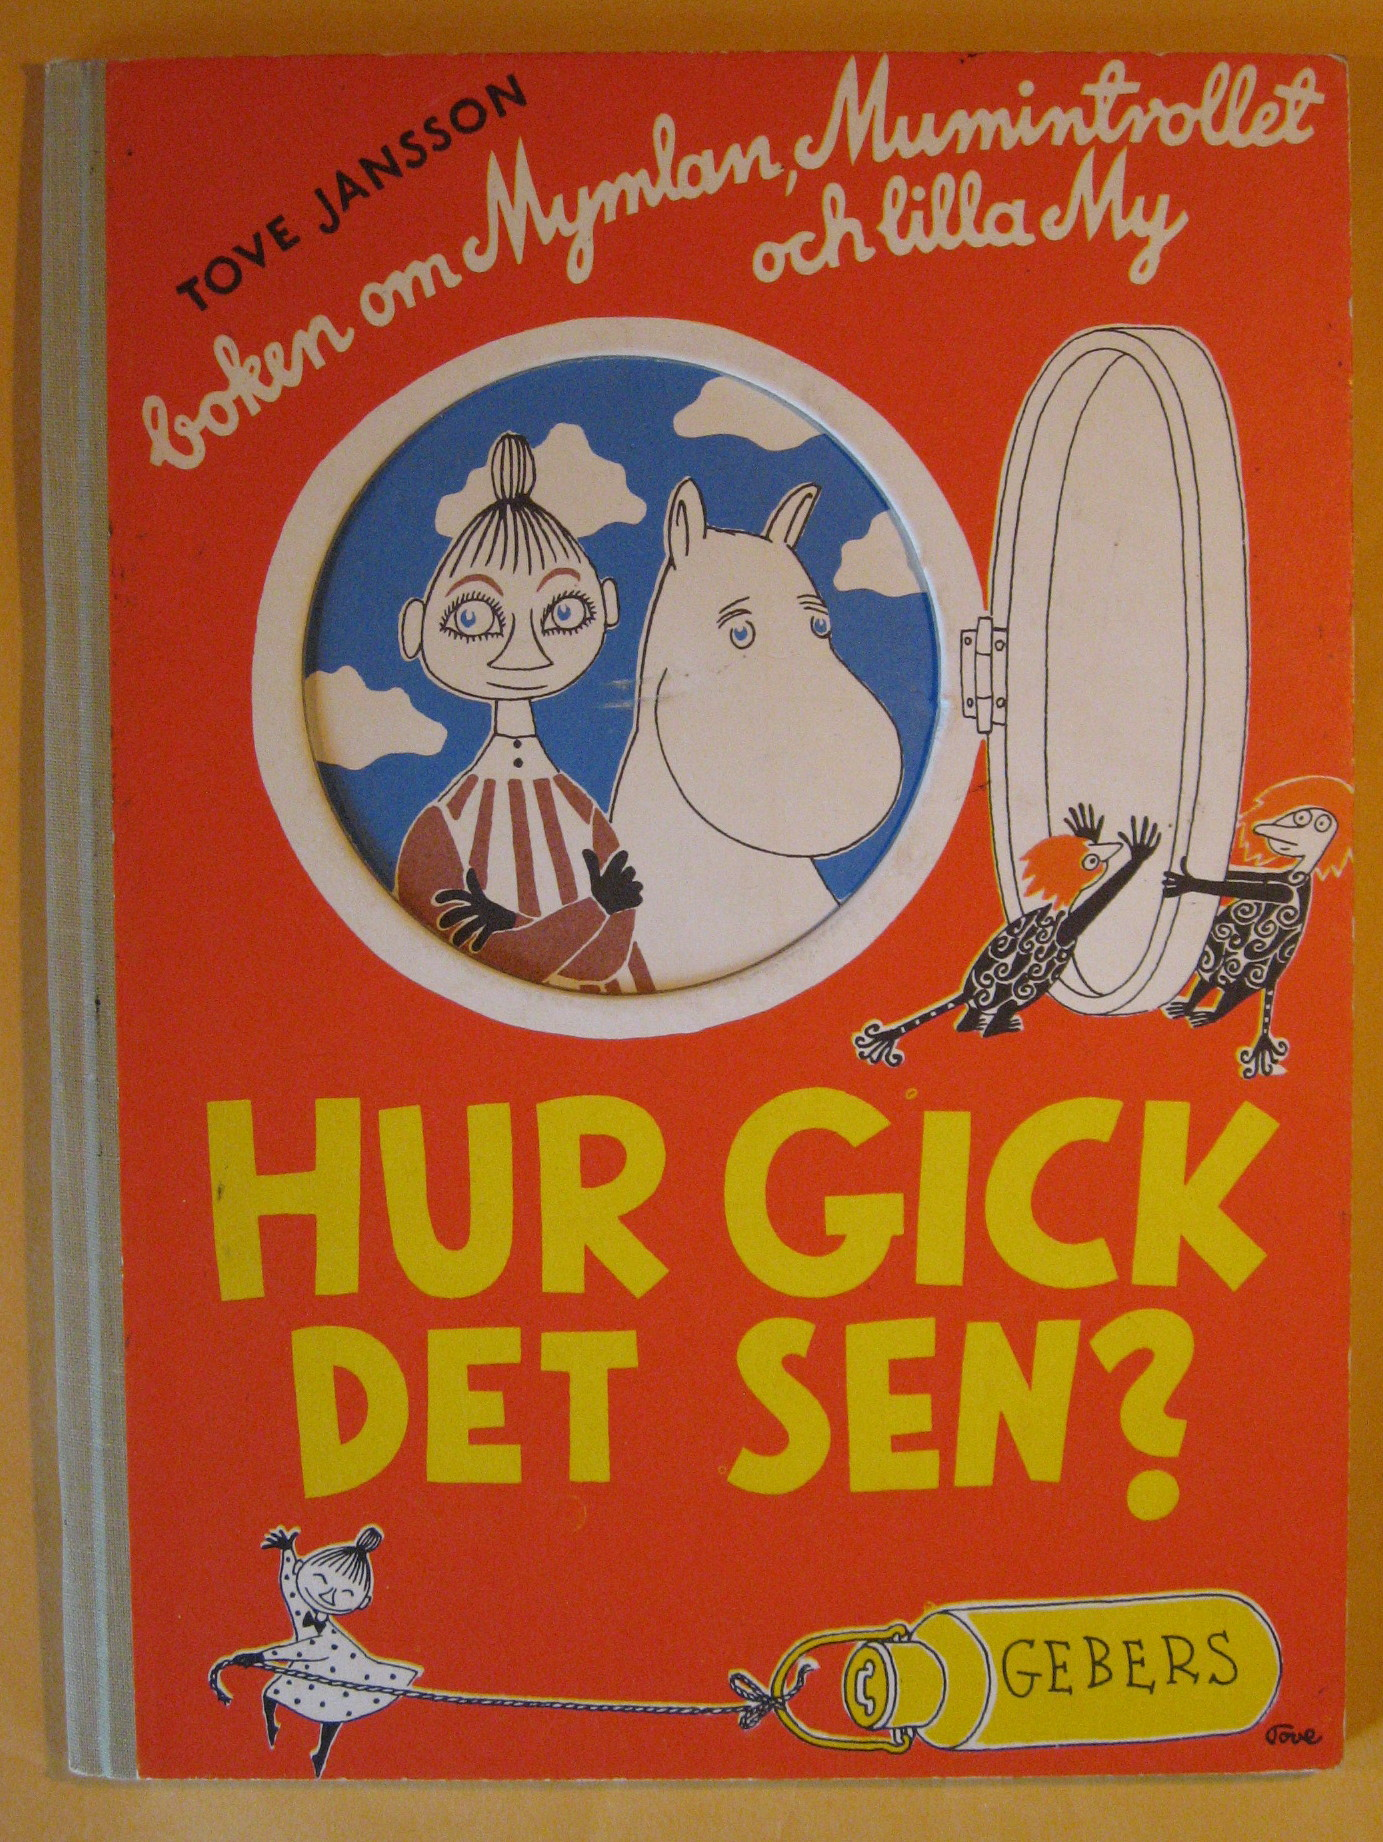 Hur Gick Det Sen? boken om Mymlan, Mumintrollet Och Lilla My [The Book About Moomin, Mymble and Little My in Swedish], Jansson, Tove